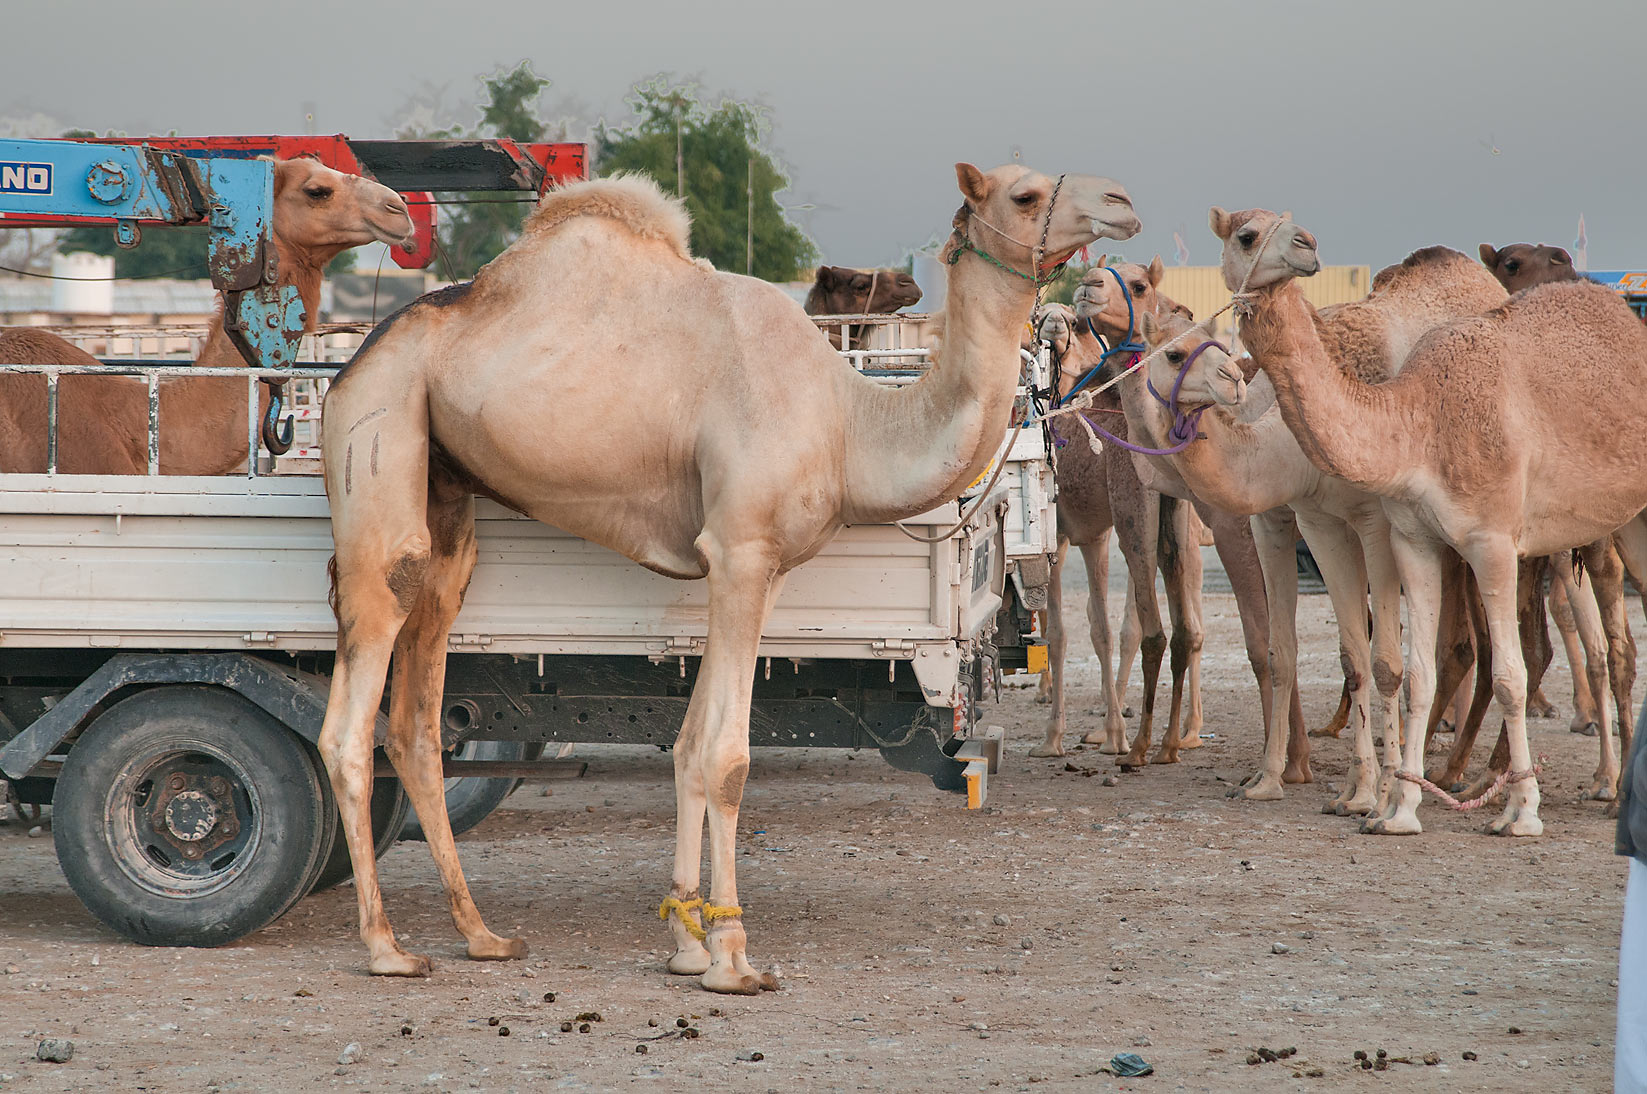 Shaved camel (with smooth skin) in Camel Market (Souq). Doha, Qatar